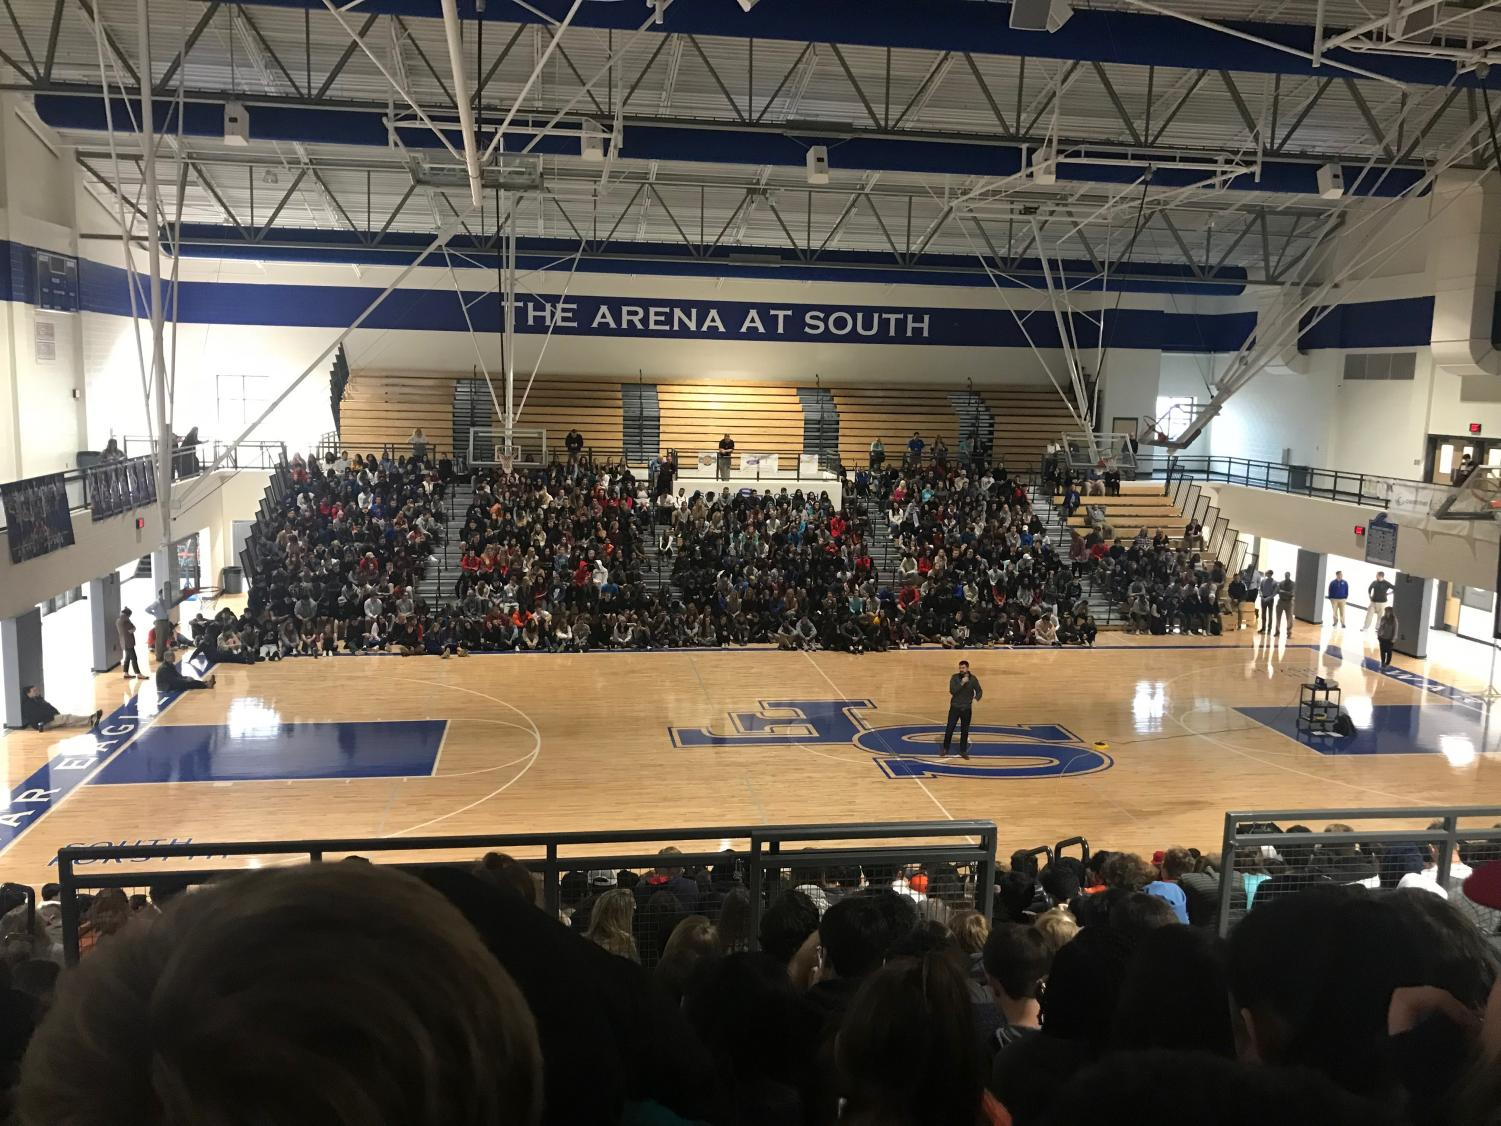 Speaker Logan Weber opens up his presentation about setting and reaching goals in South's Arena this morning. The Arena was packed with students, forcing the faculty to move the projector and screen  back and adjust the speakers' rotation.